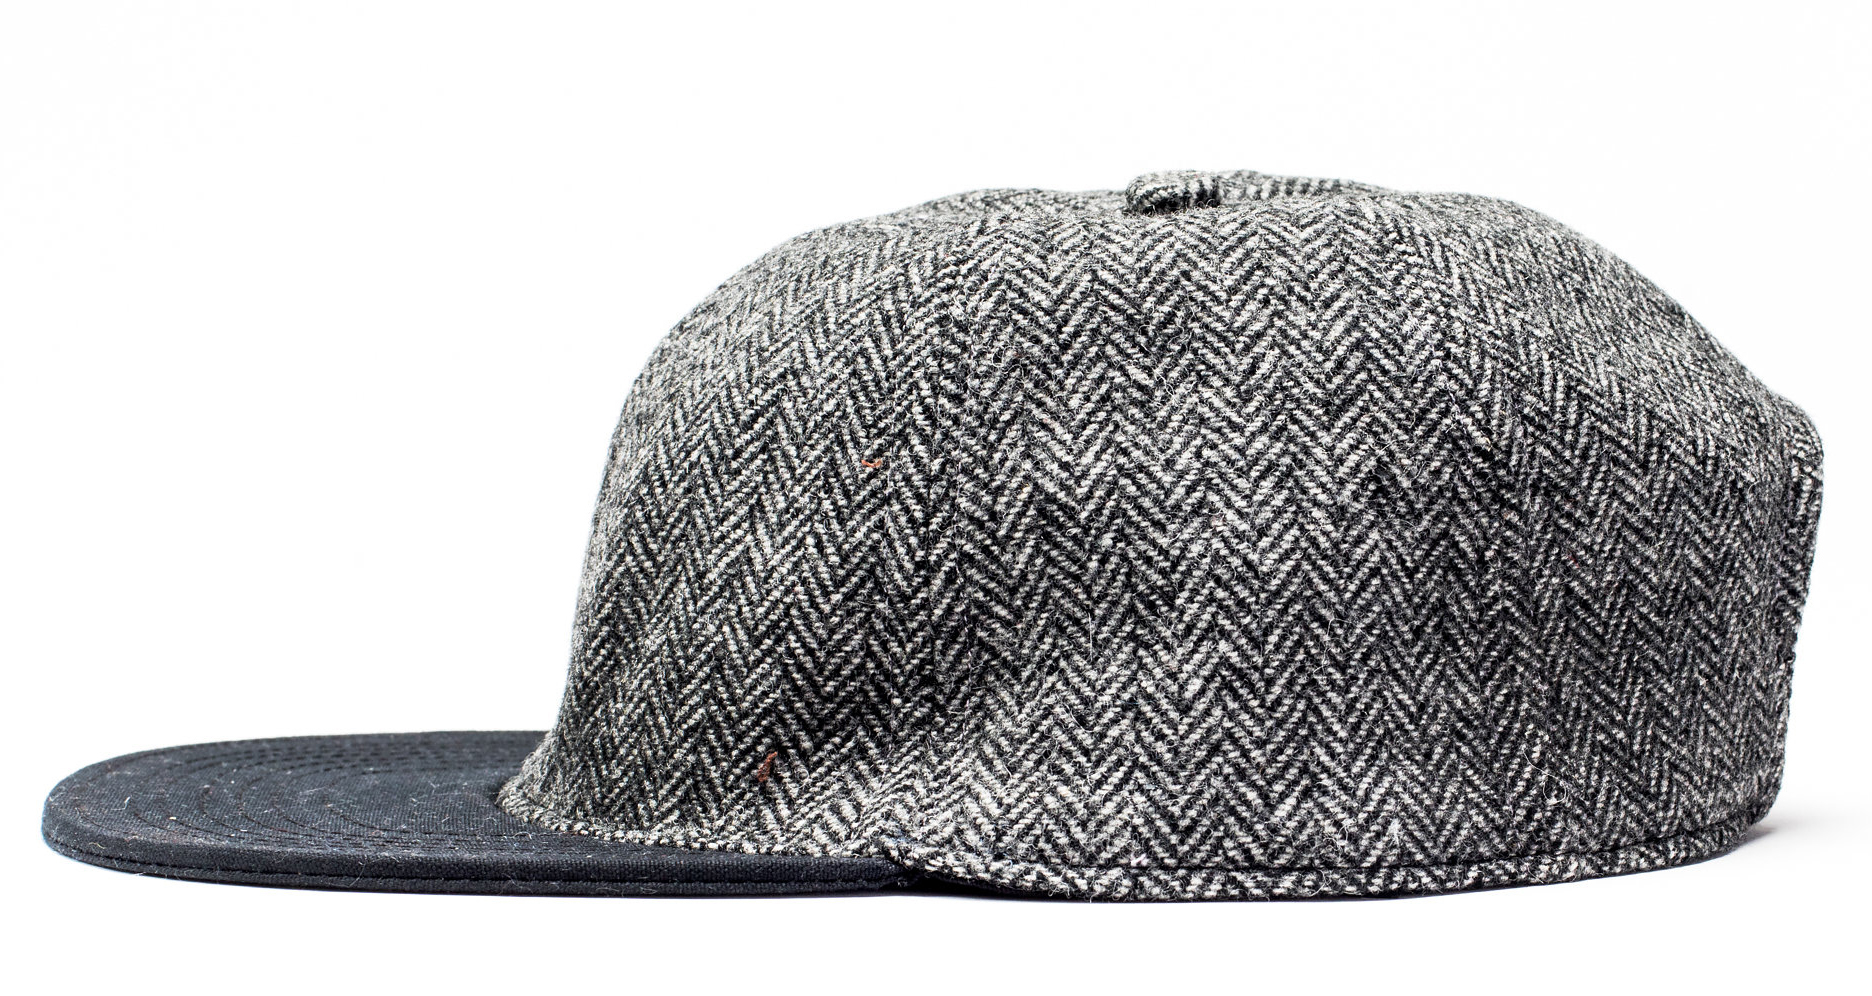 b w herringbone hat side.jpg